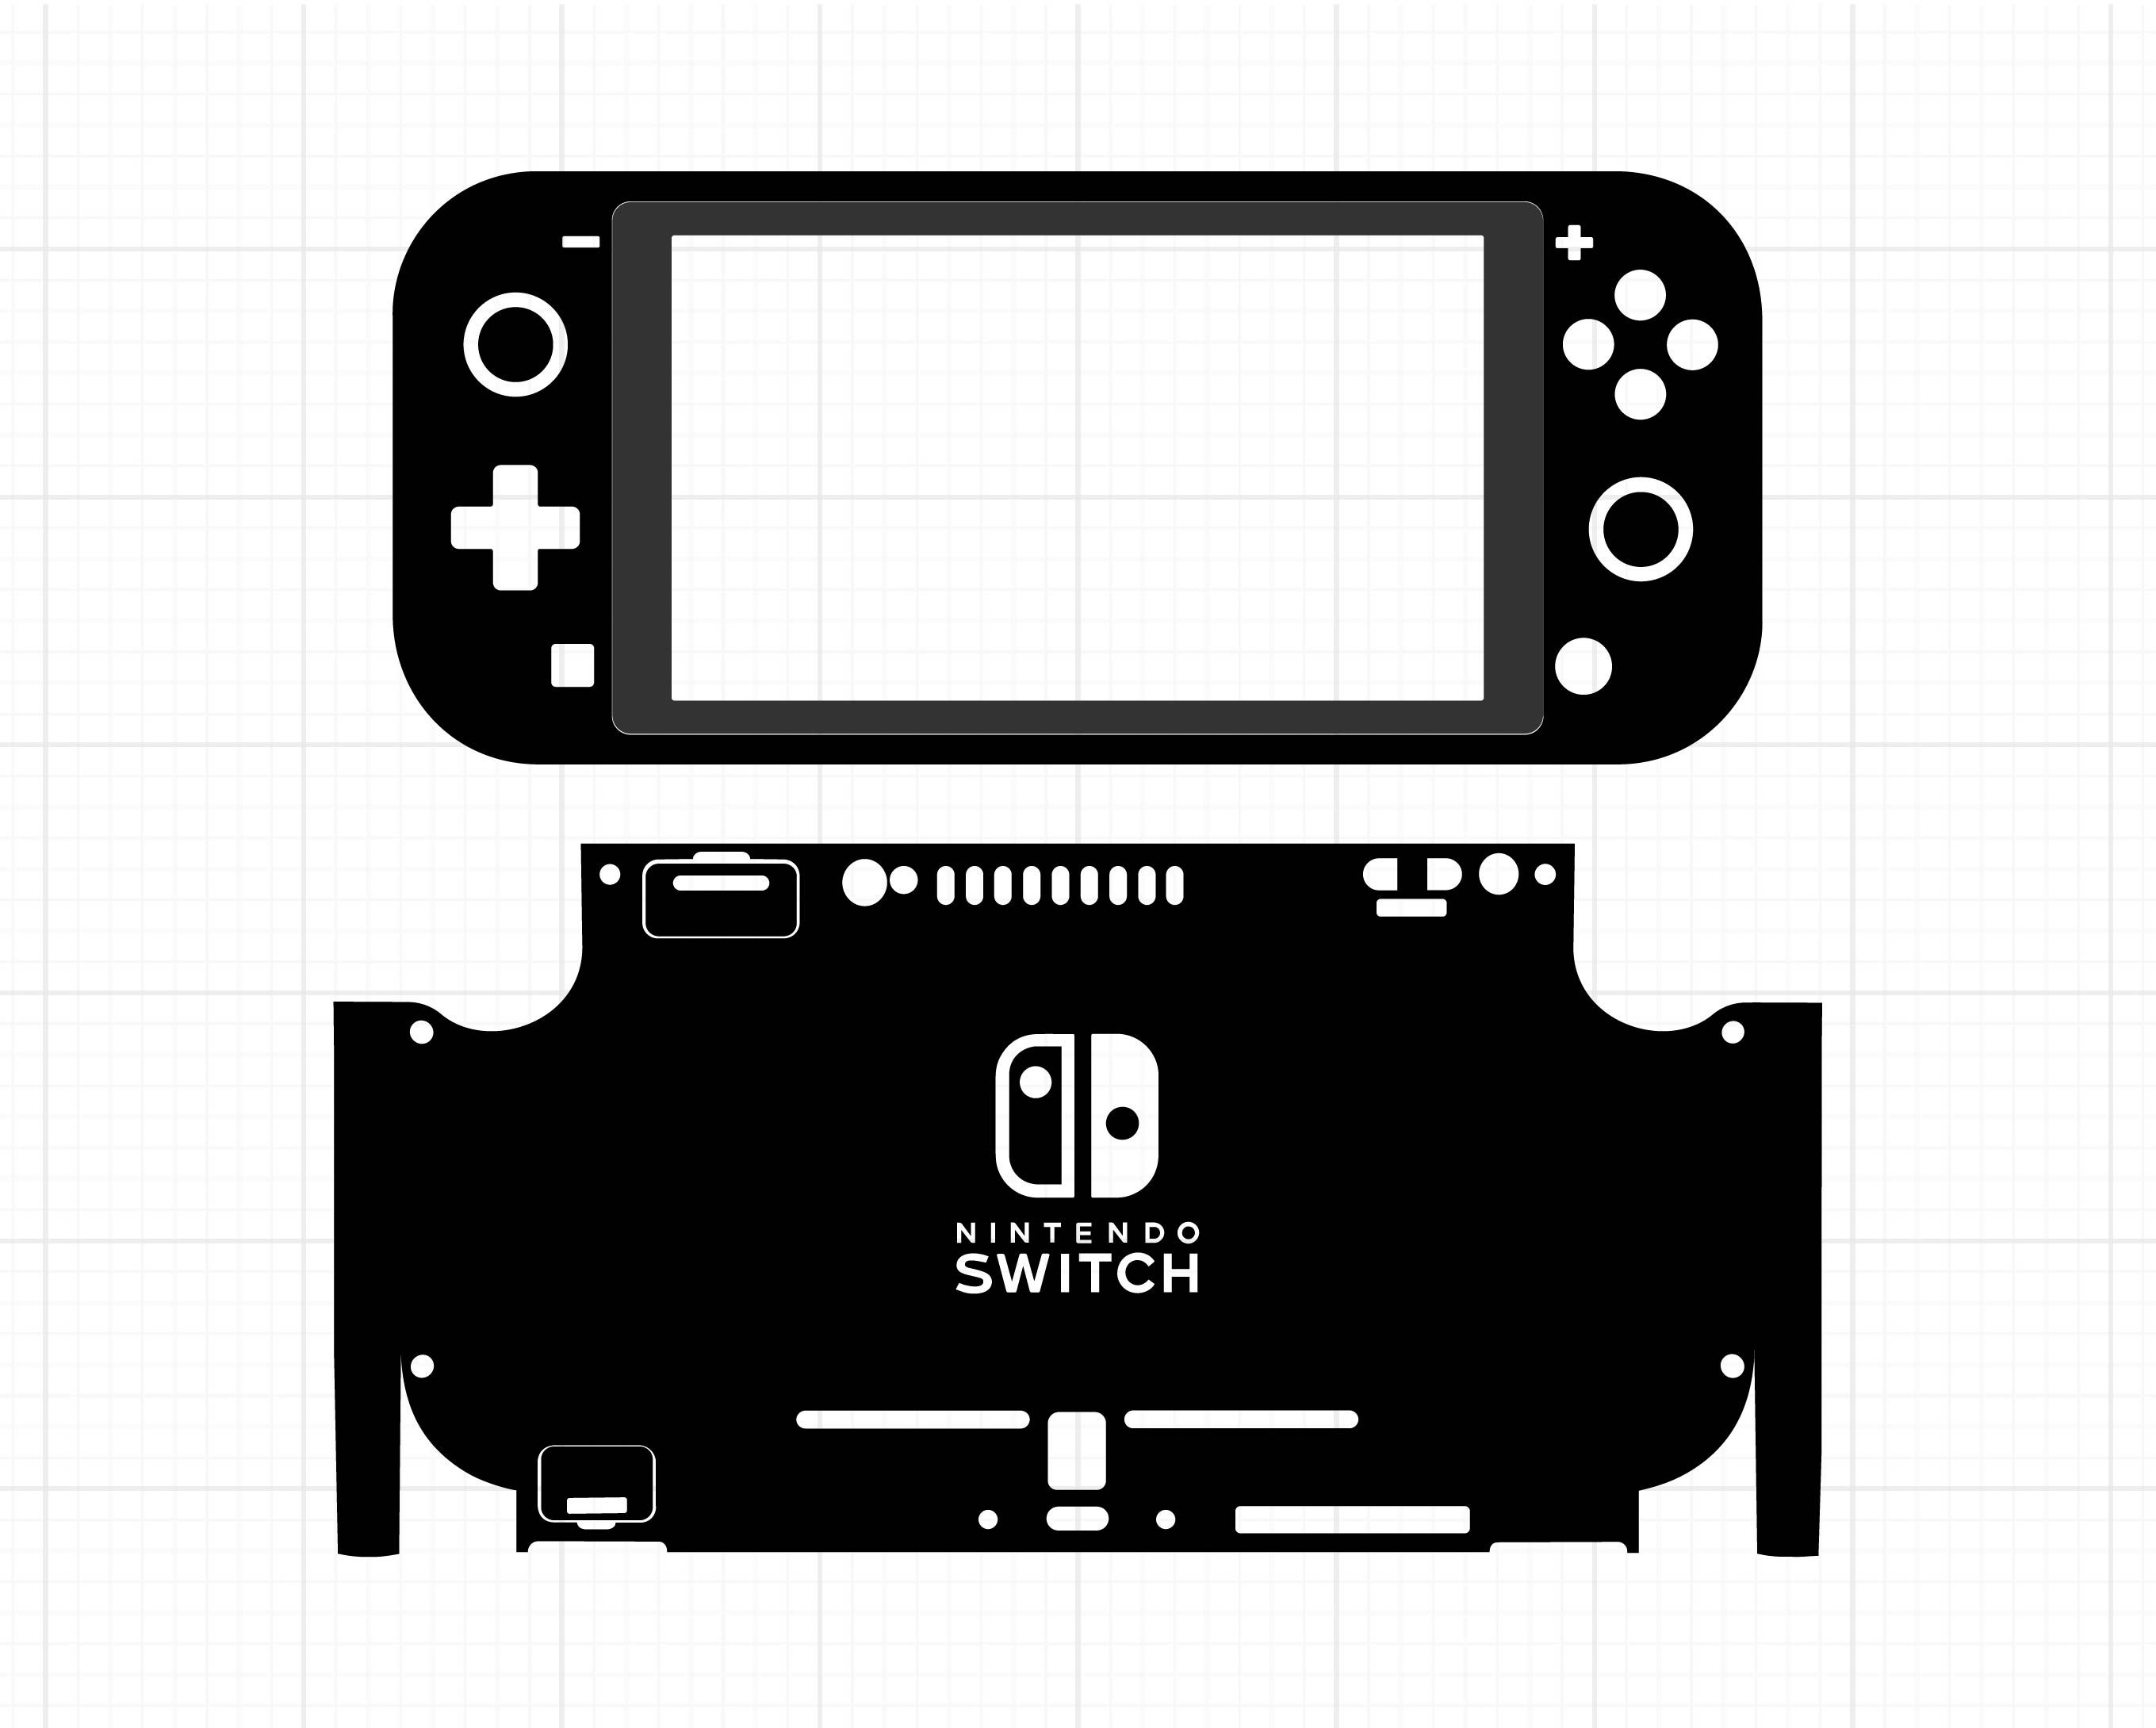 46+ Nintendo switch clipart black and white ideas in 2021